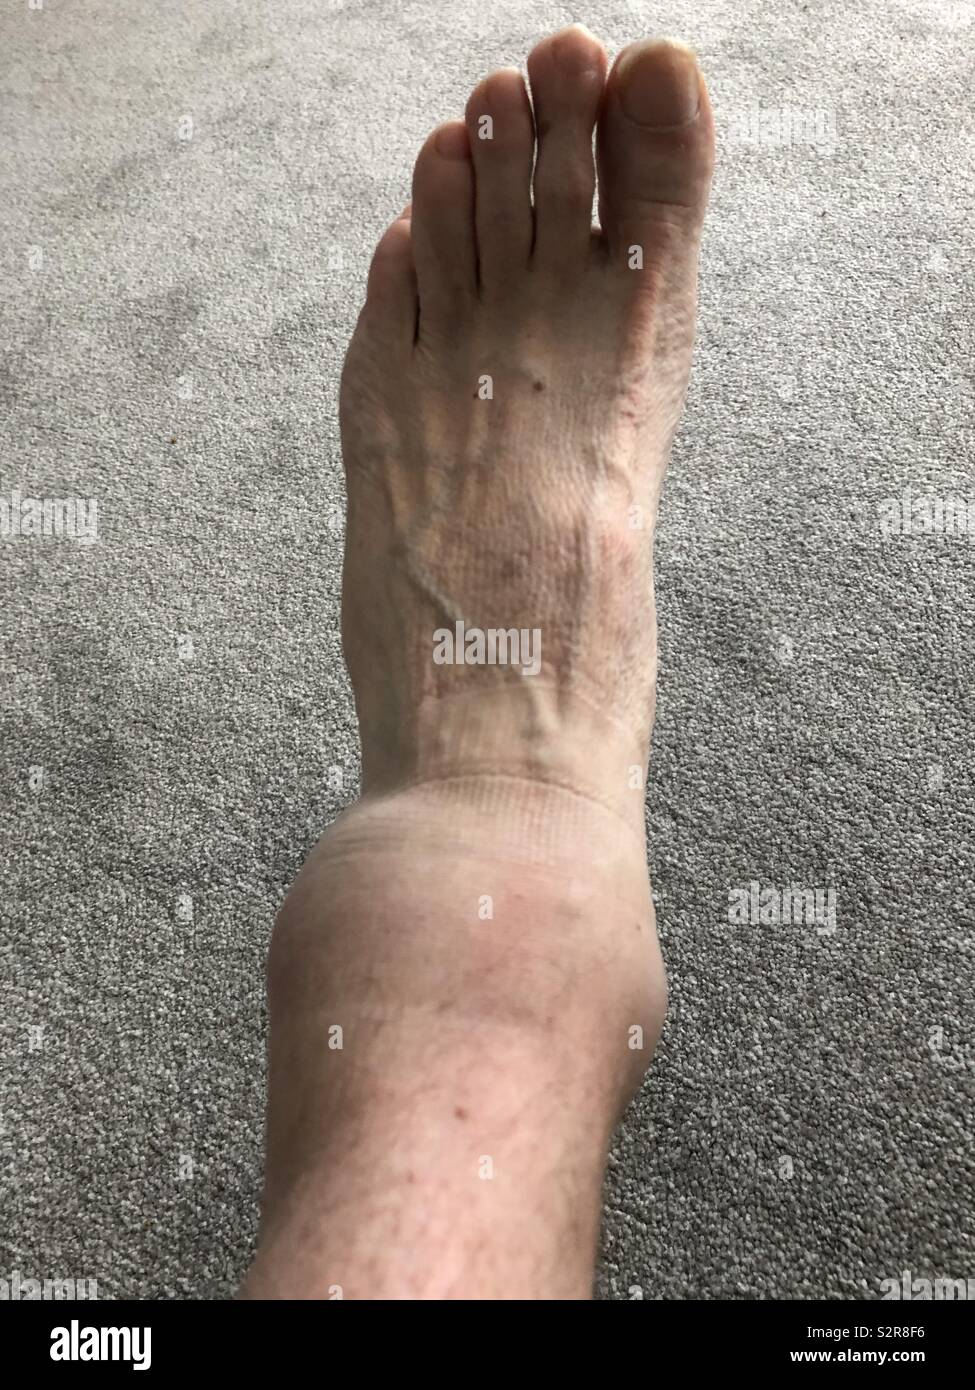 Badly sprained and swollen ankle - Stock Image